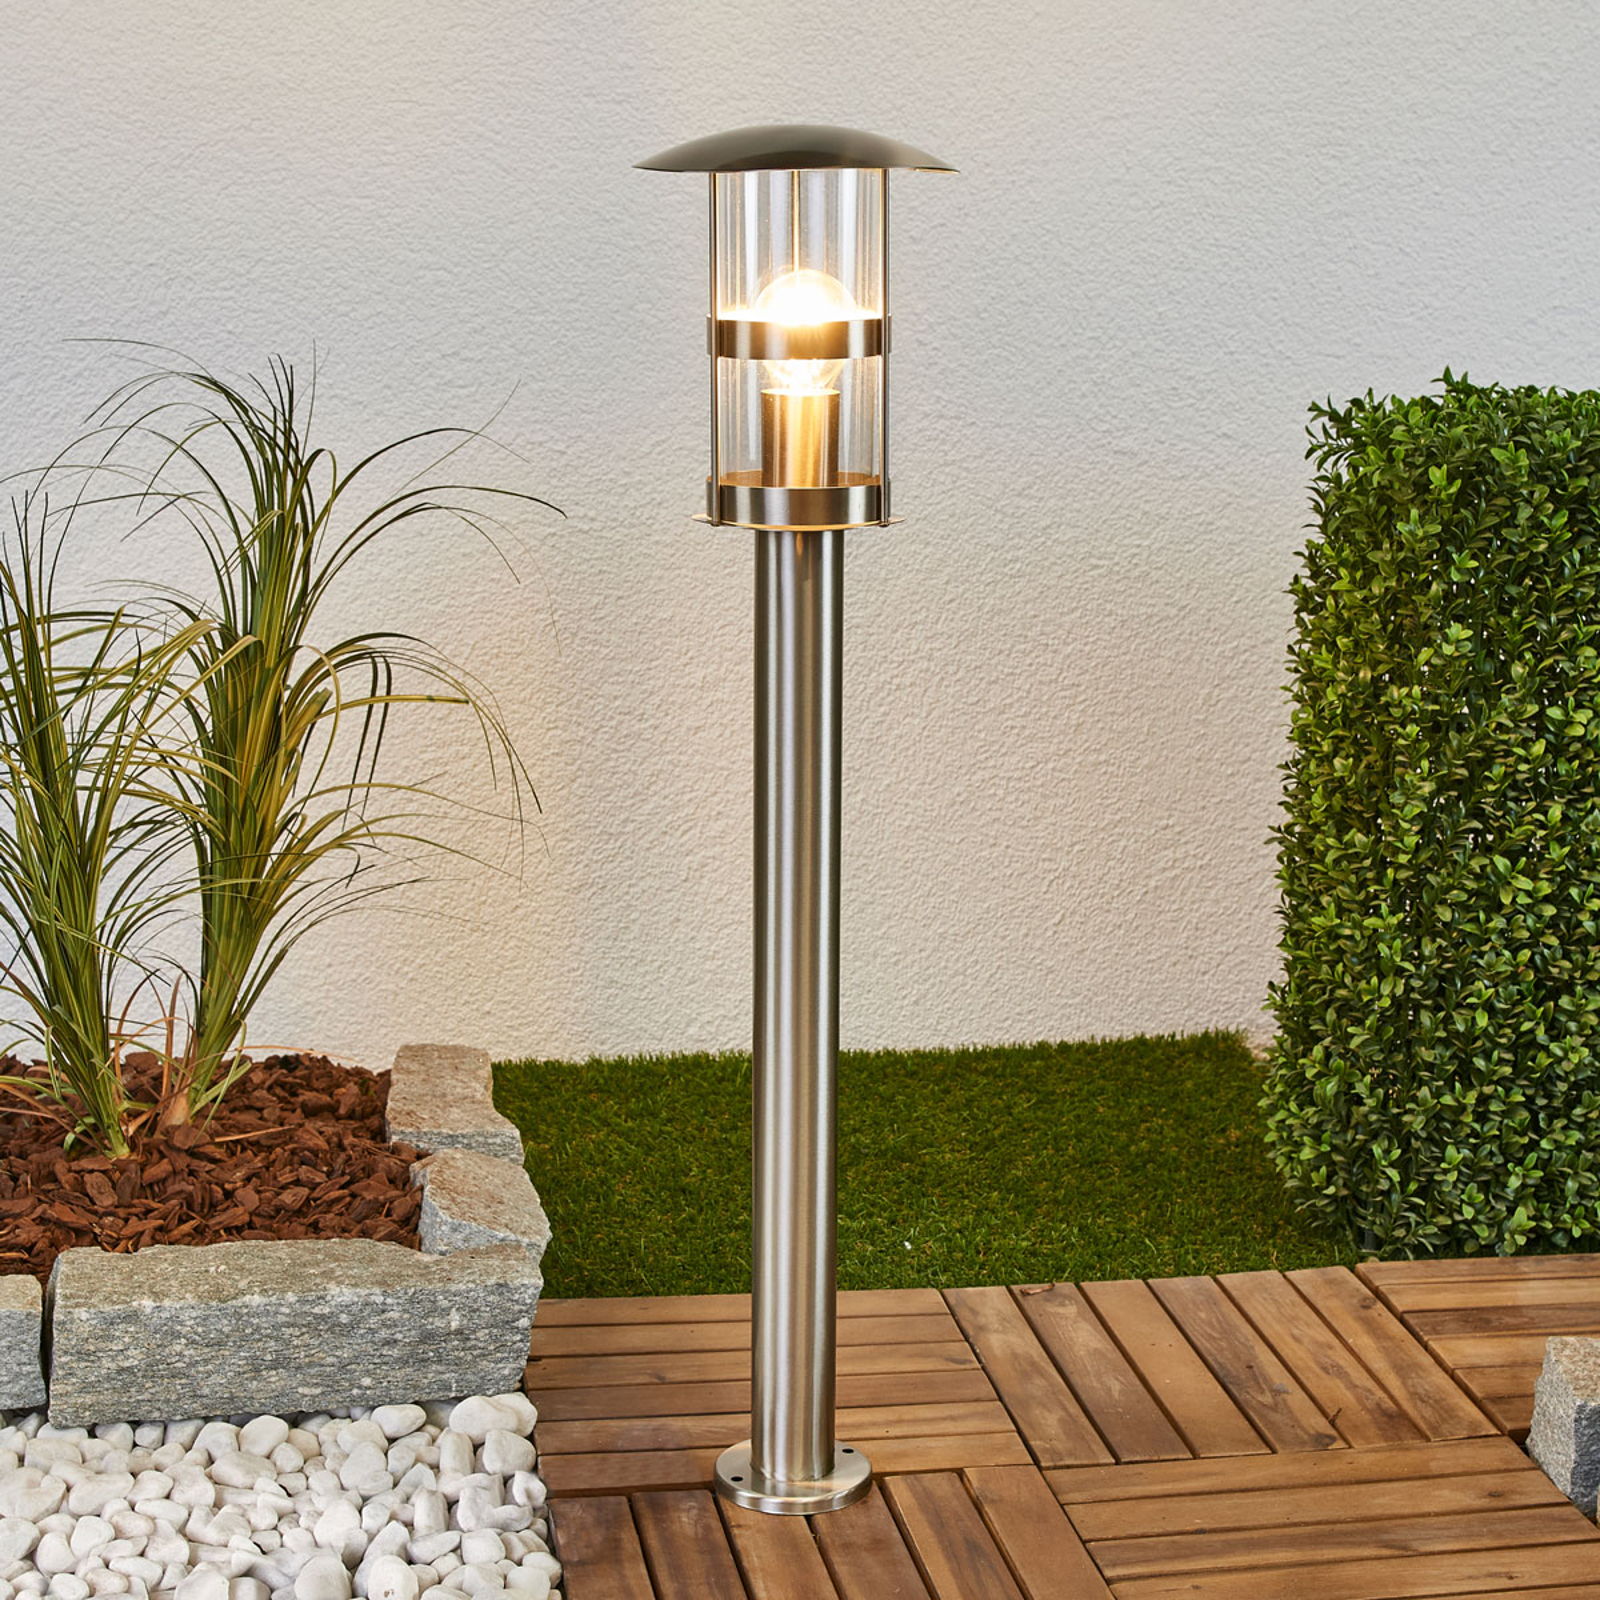 Lindby Noemi stainless steel path lamp for outdoors | Stainless steel